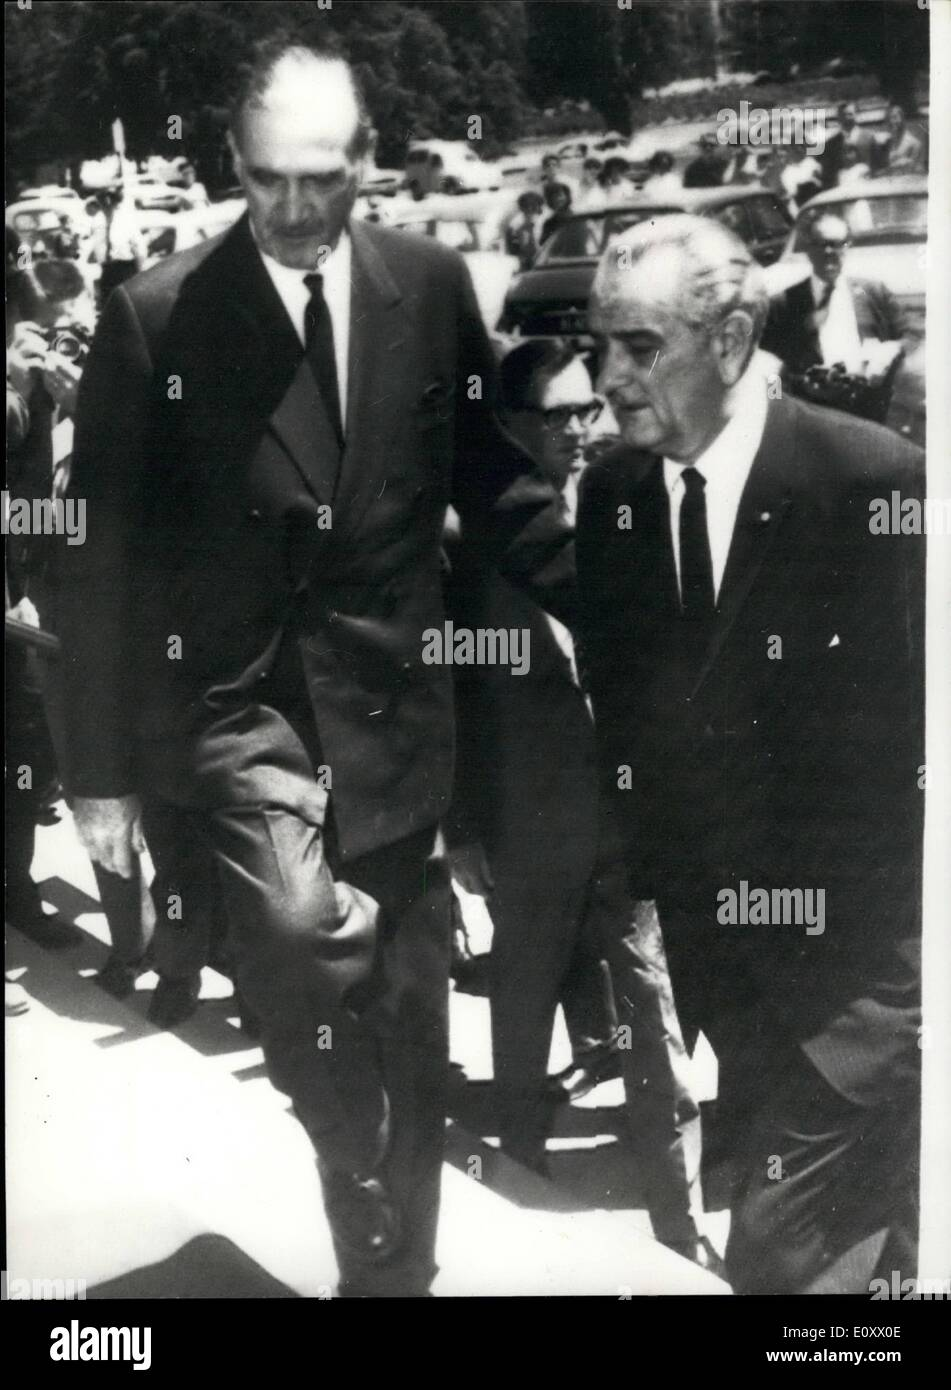 Canberra Today Dec 12 1967 President Johnson Arrives In Canberra To Attend